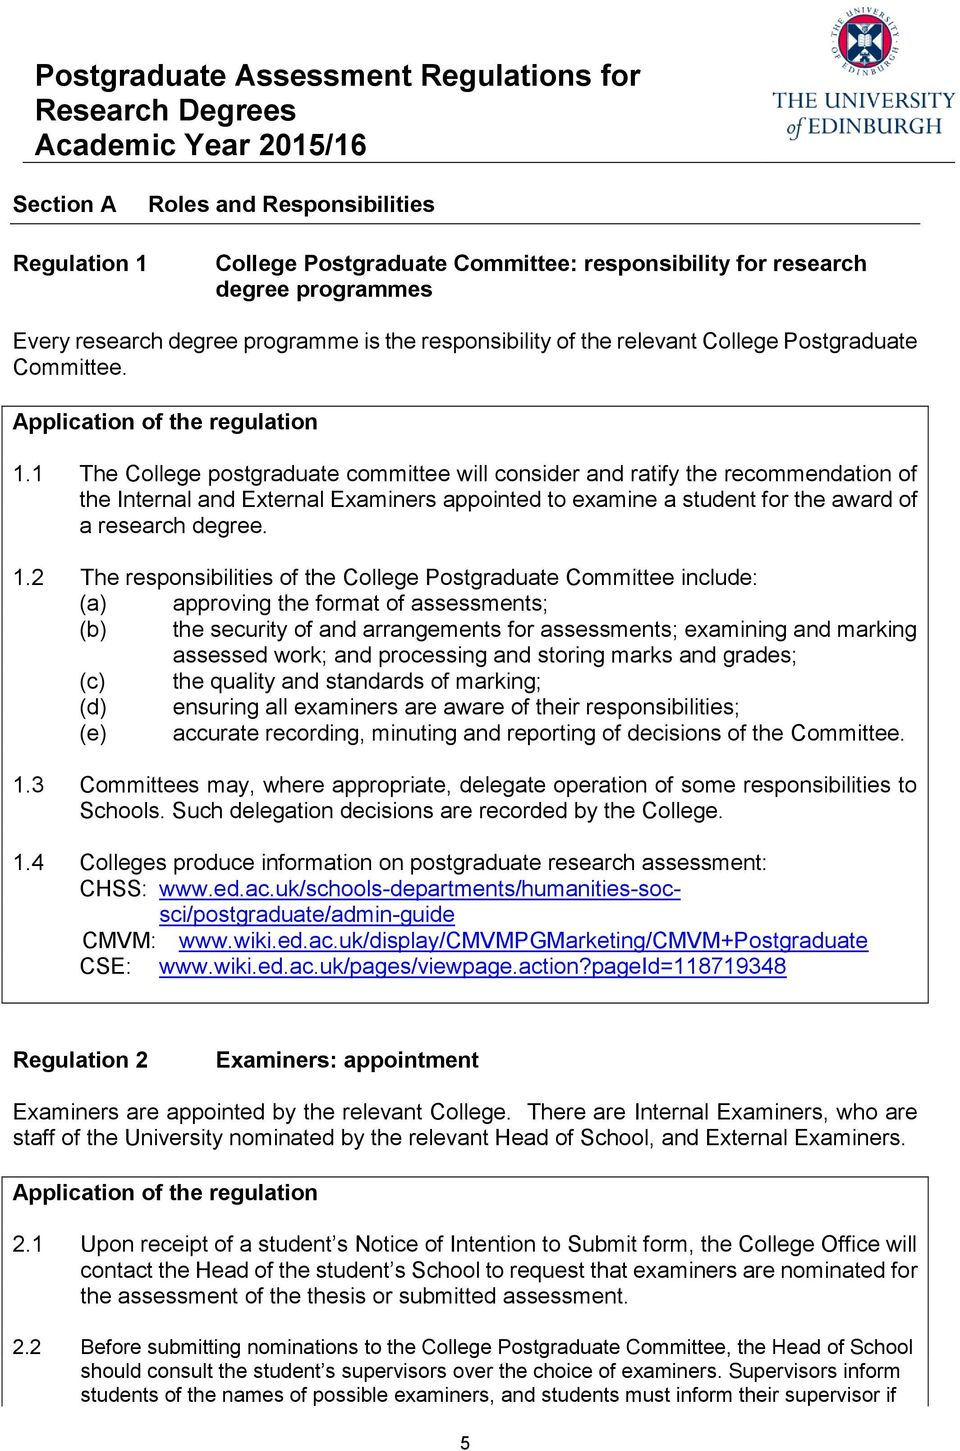 1 The College postgraduate committee will consider and ratify the recommendation of the Internal and External Examiners appointed to examine a student for the award of a research degree. 1.